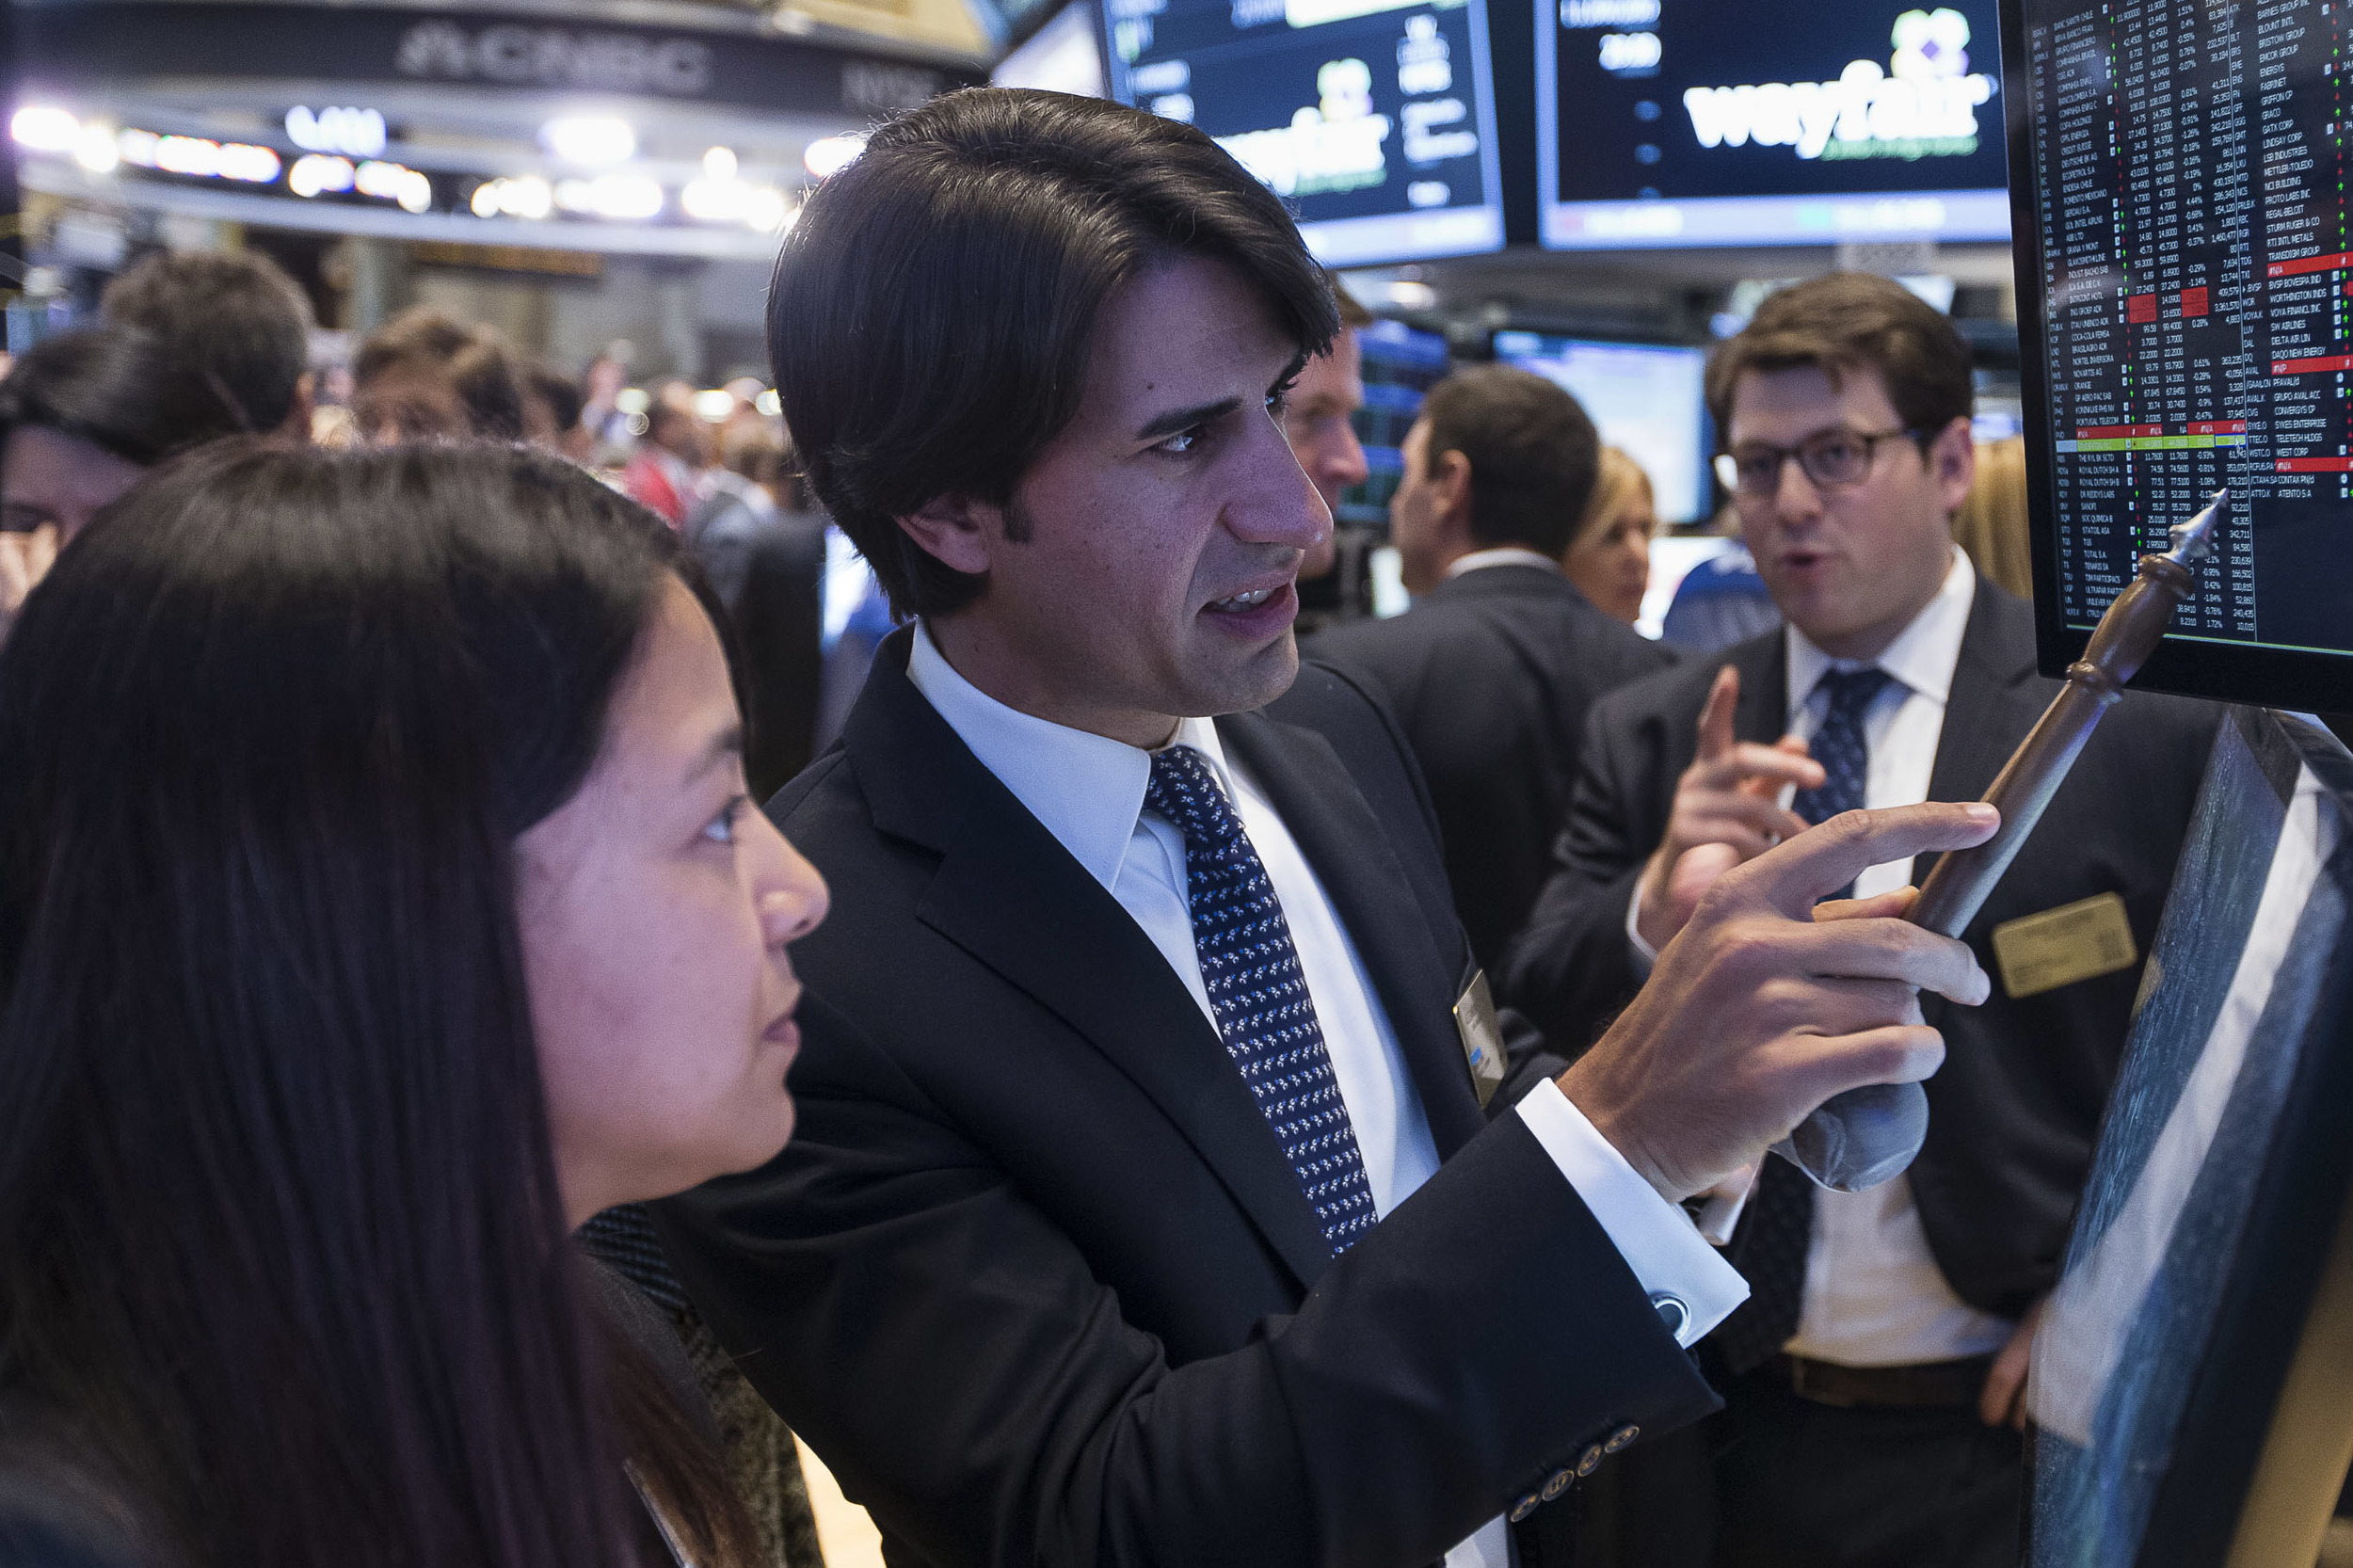 A CEO uses his ceremonial gavel to analyze numbers with his Designated Market Maker.